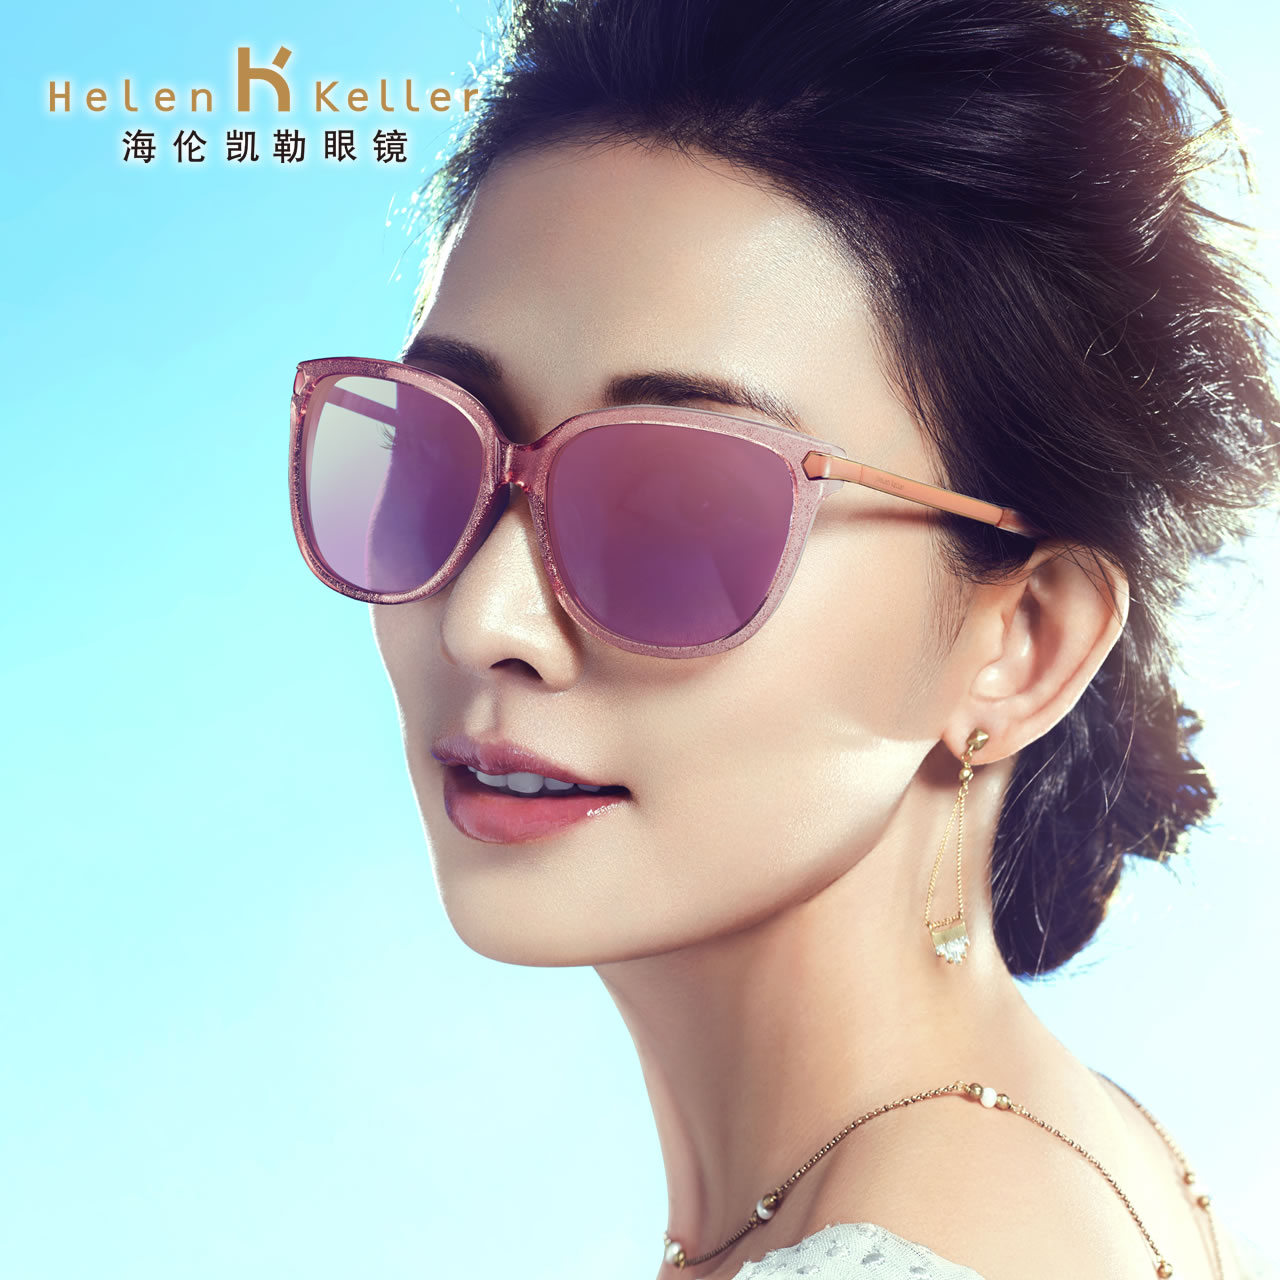 4a53c585a6 Get Quotations · Helen keller sunglasses female polarized sunglasses  driving mirror driver cool coating off dance movement h8331